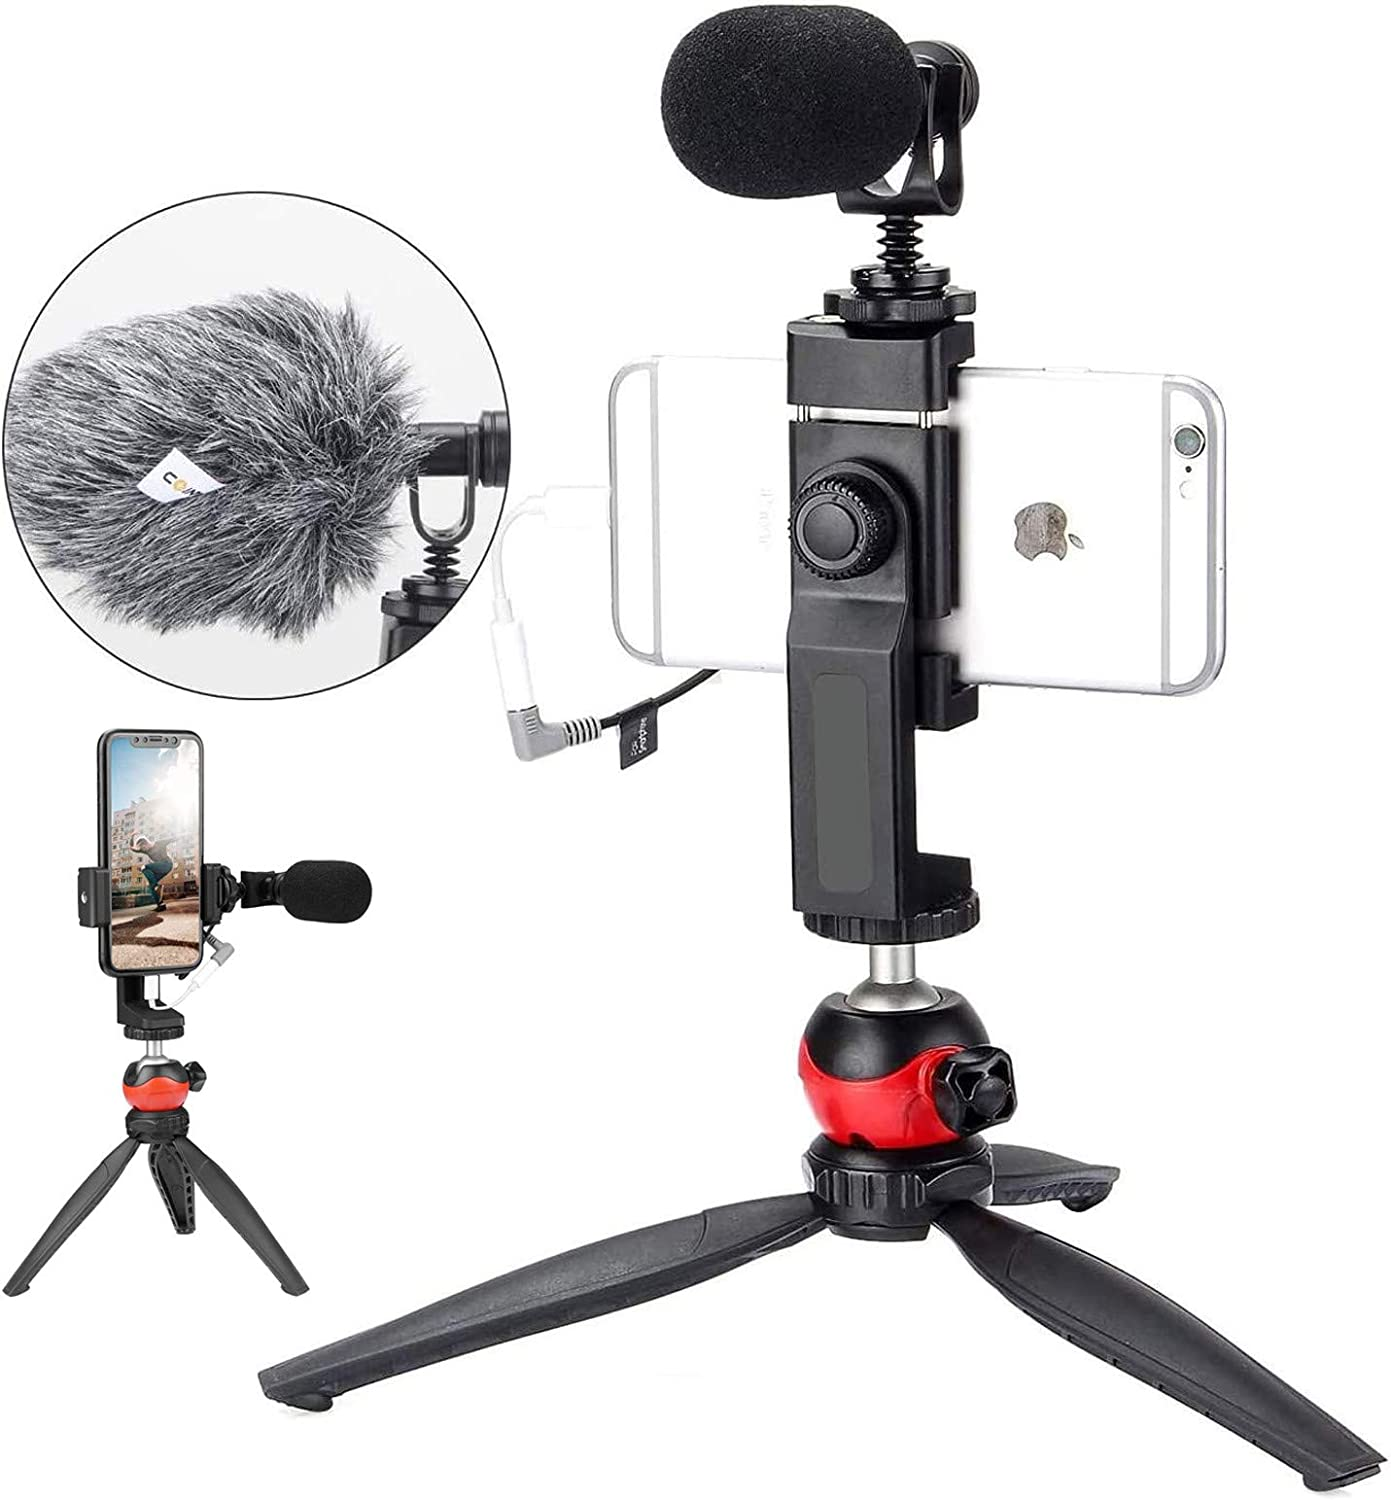 NEW before selling ☆ EACHSHOT Microphone for Seattle Mall iPhone Tripod Equipment Recording with